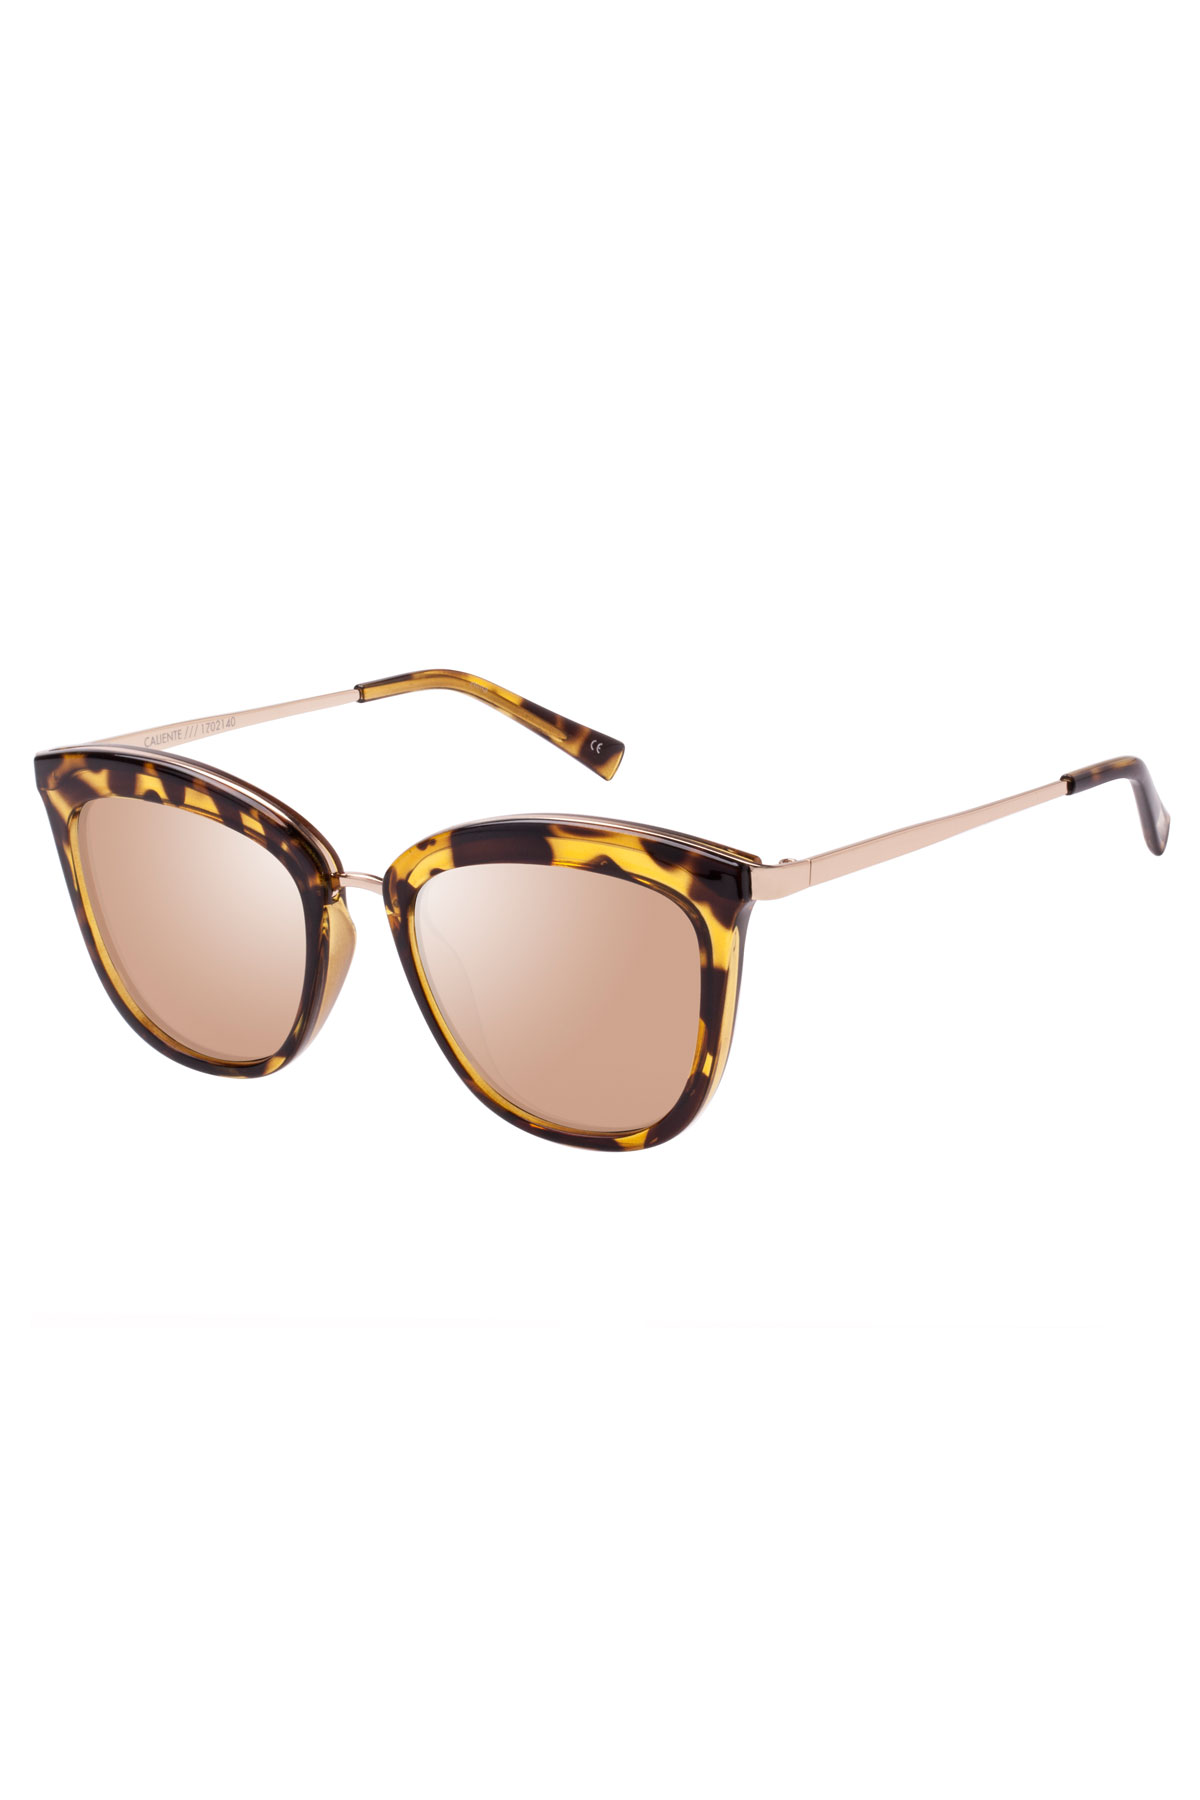 Caliente Copper Mirror Lens Cateye Sunglasses - Syrup Tort